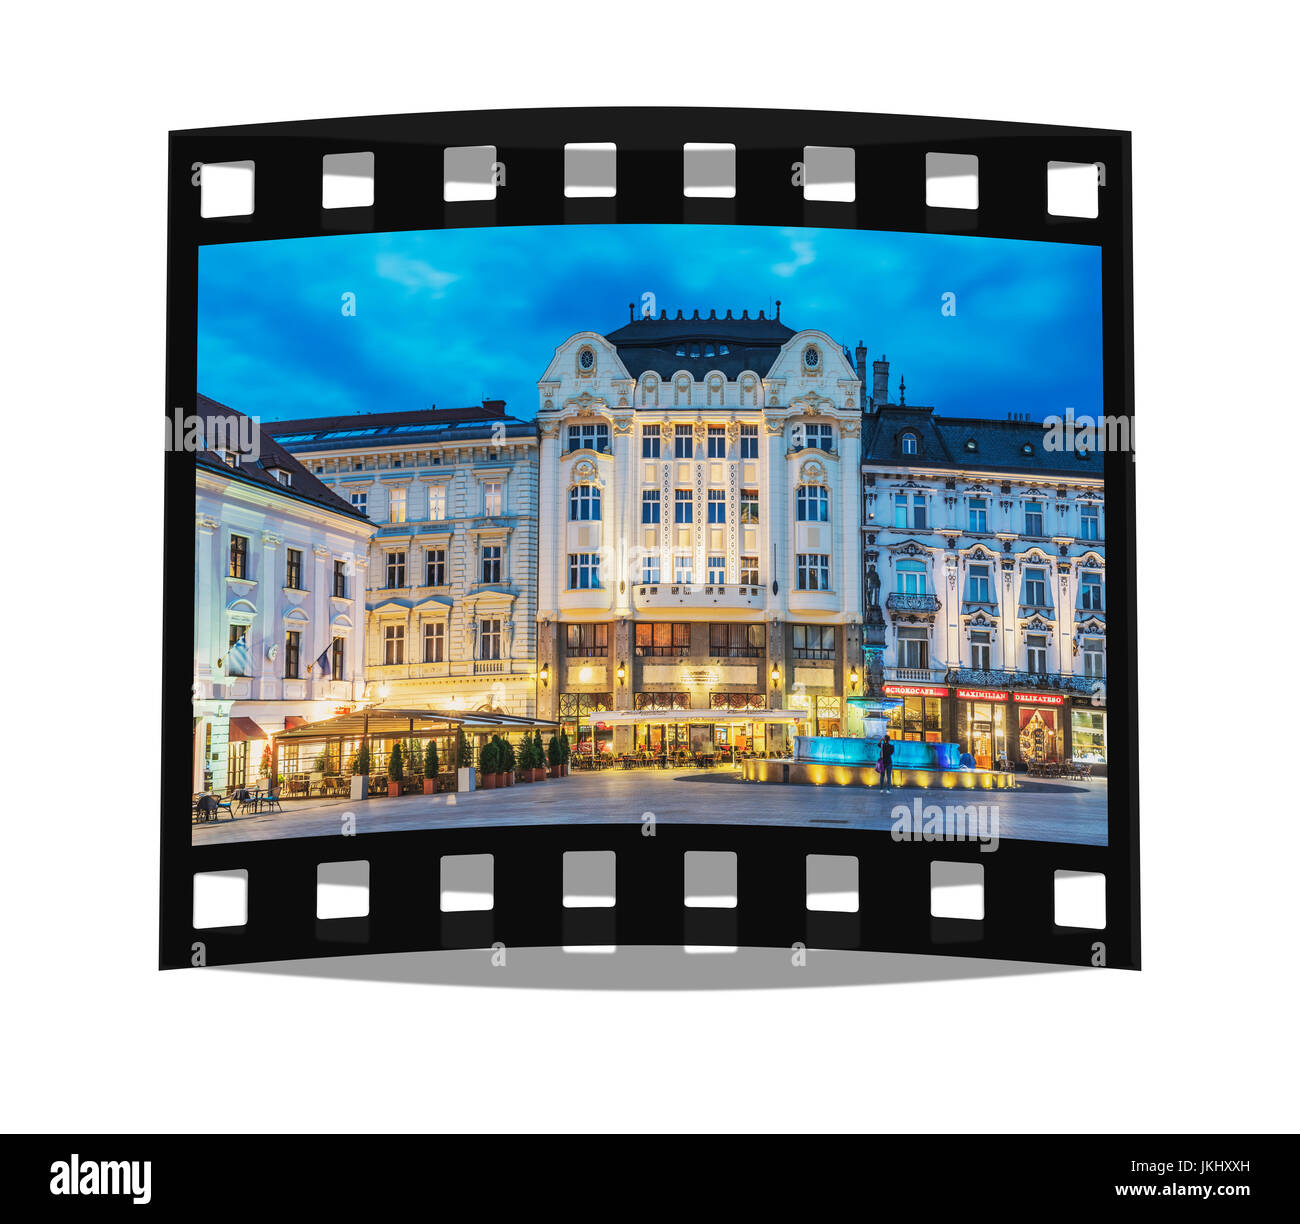 West side of the Main Square, Hlavne namestie, in the evening, Bratislava, Slovakia, Europe - Stock Image